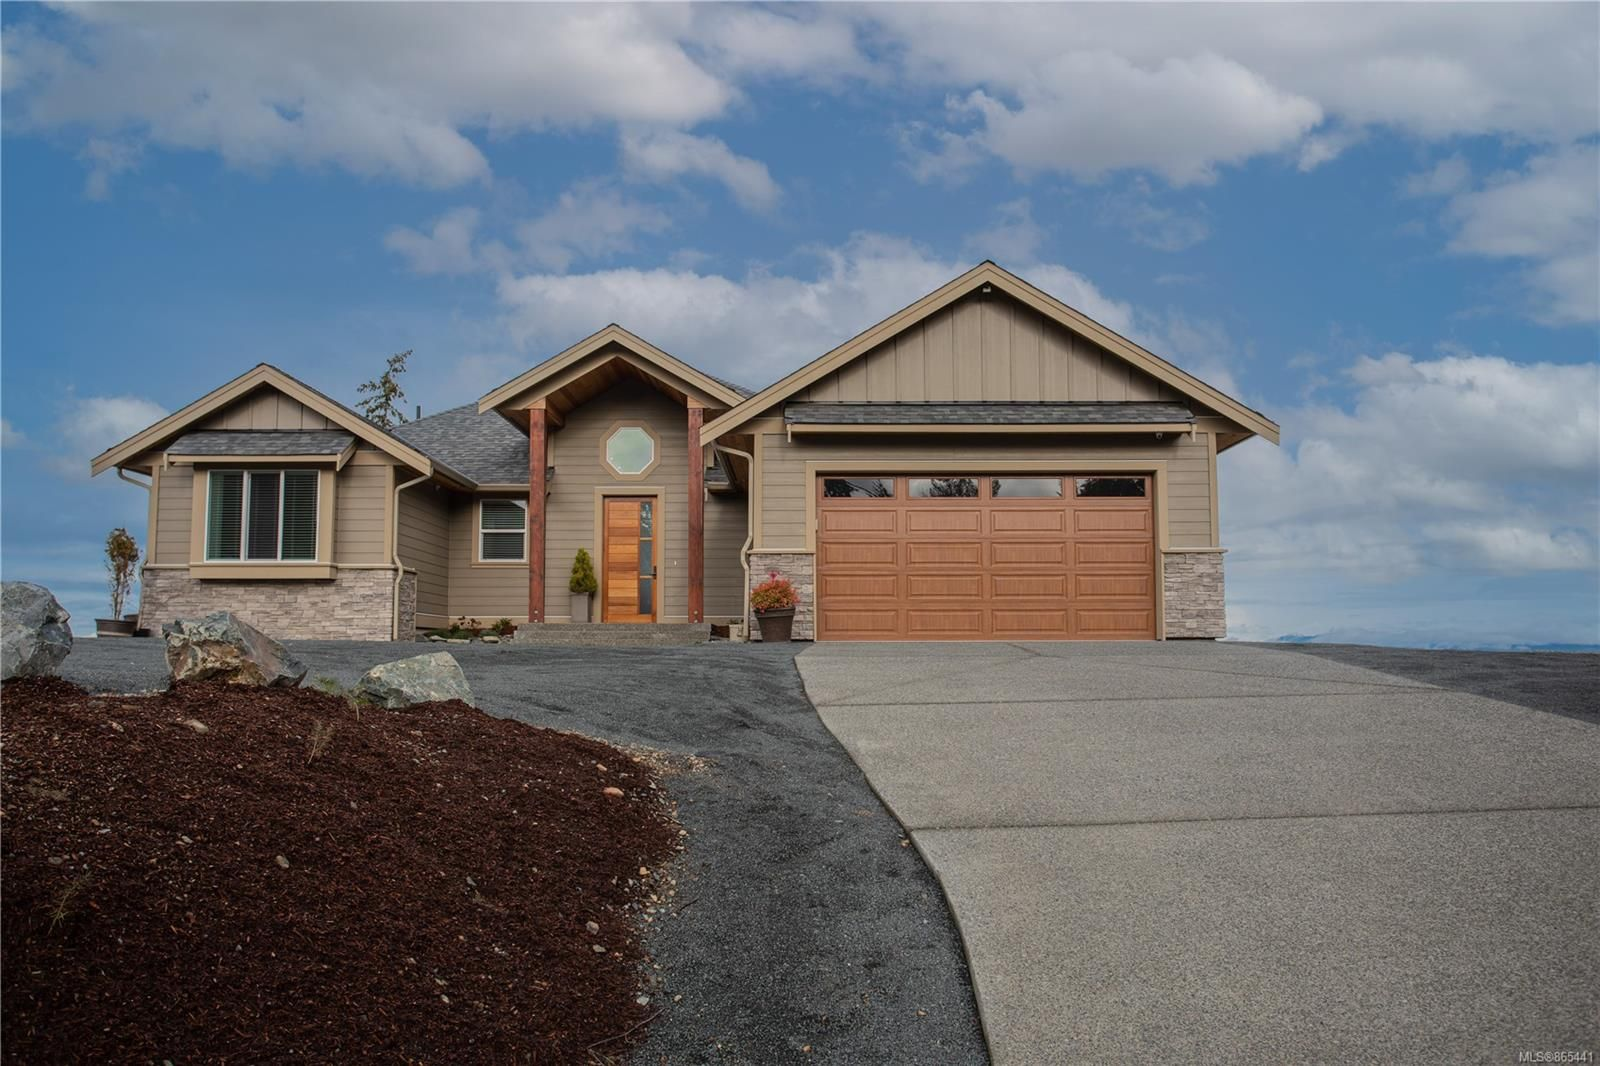 Main Photo: 7320 Spence's Way in : Na Upper Lantzville House for sale (Nanaimo)  : MLS®# 865441